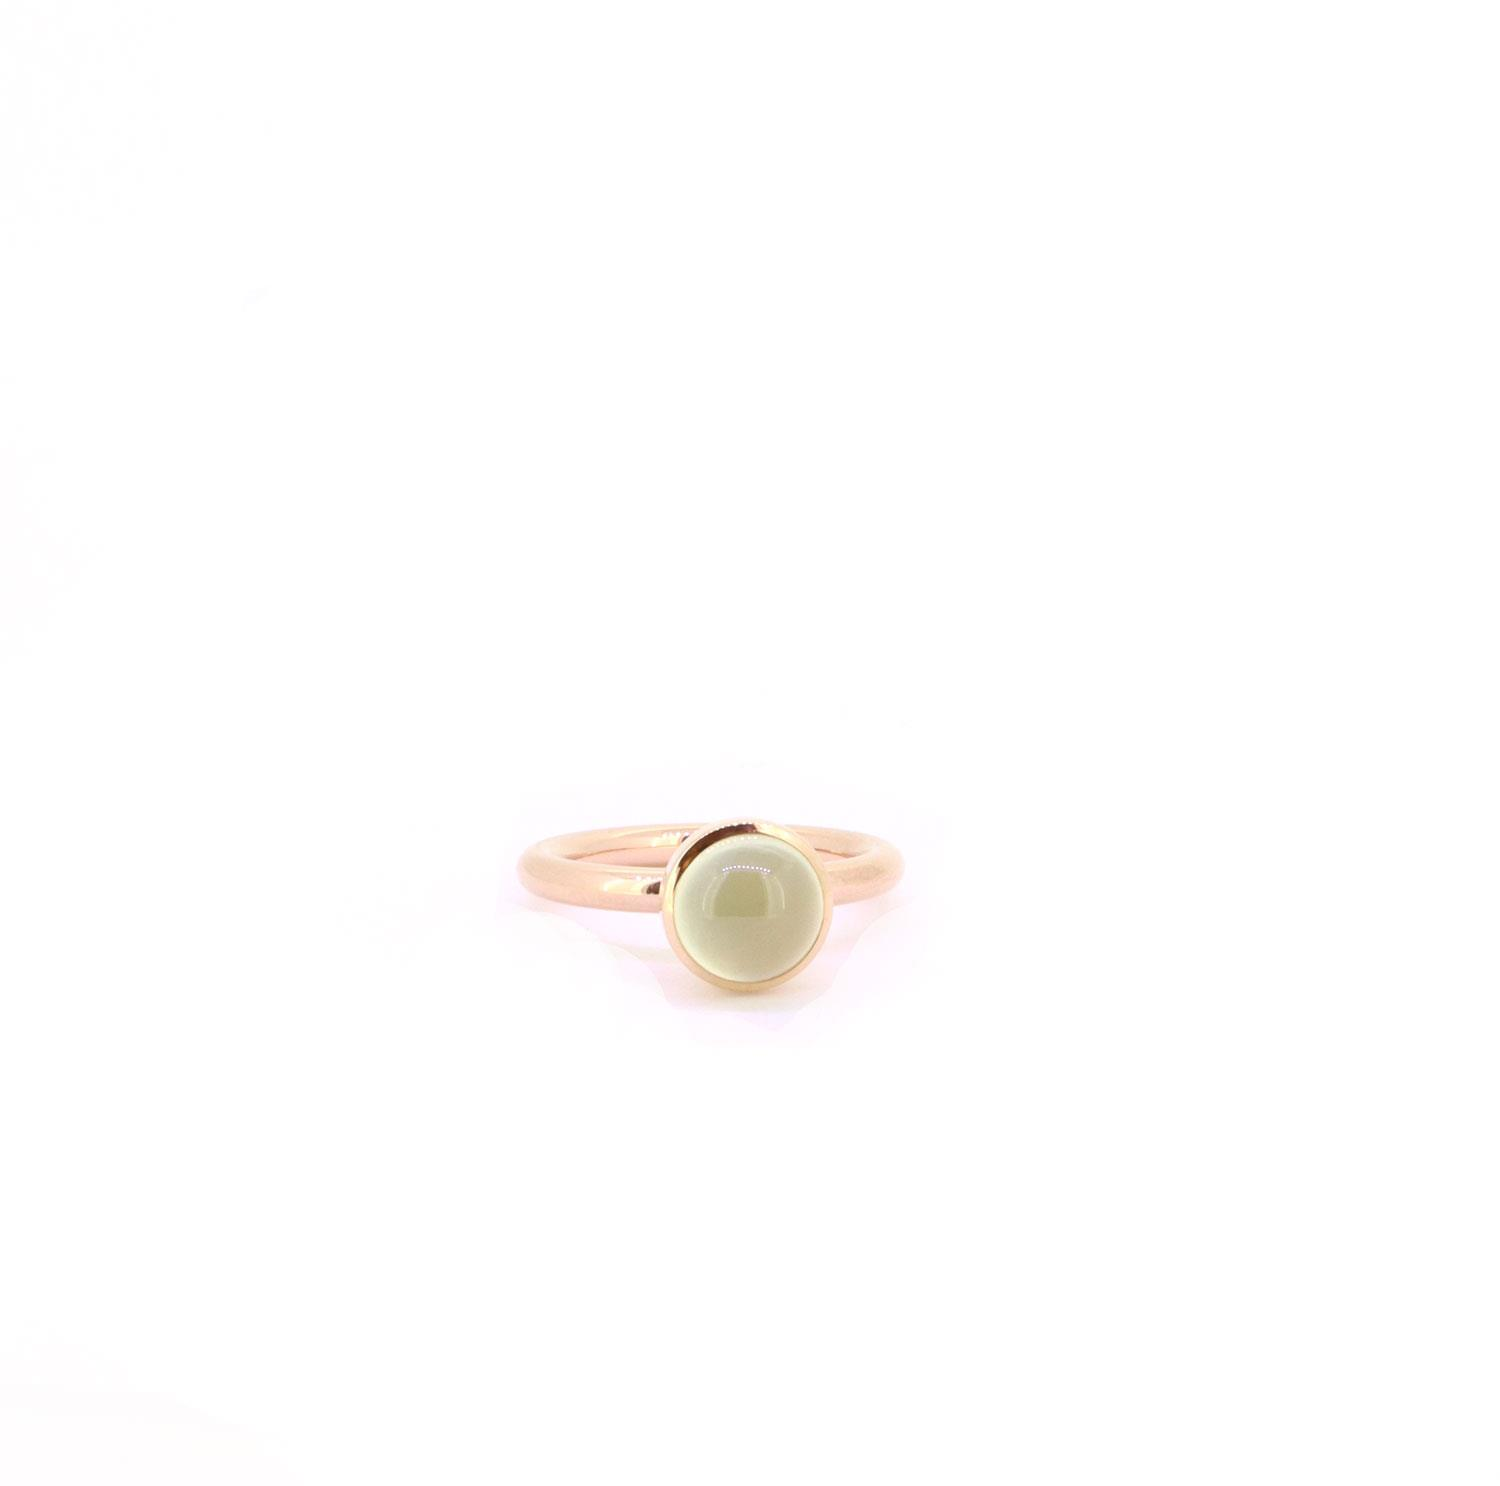 Ring Twiggy 8mm Prehnit Rotgold - Georg Spreng - 421spre09-5A